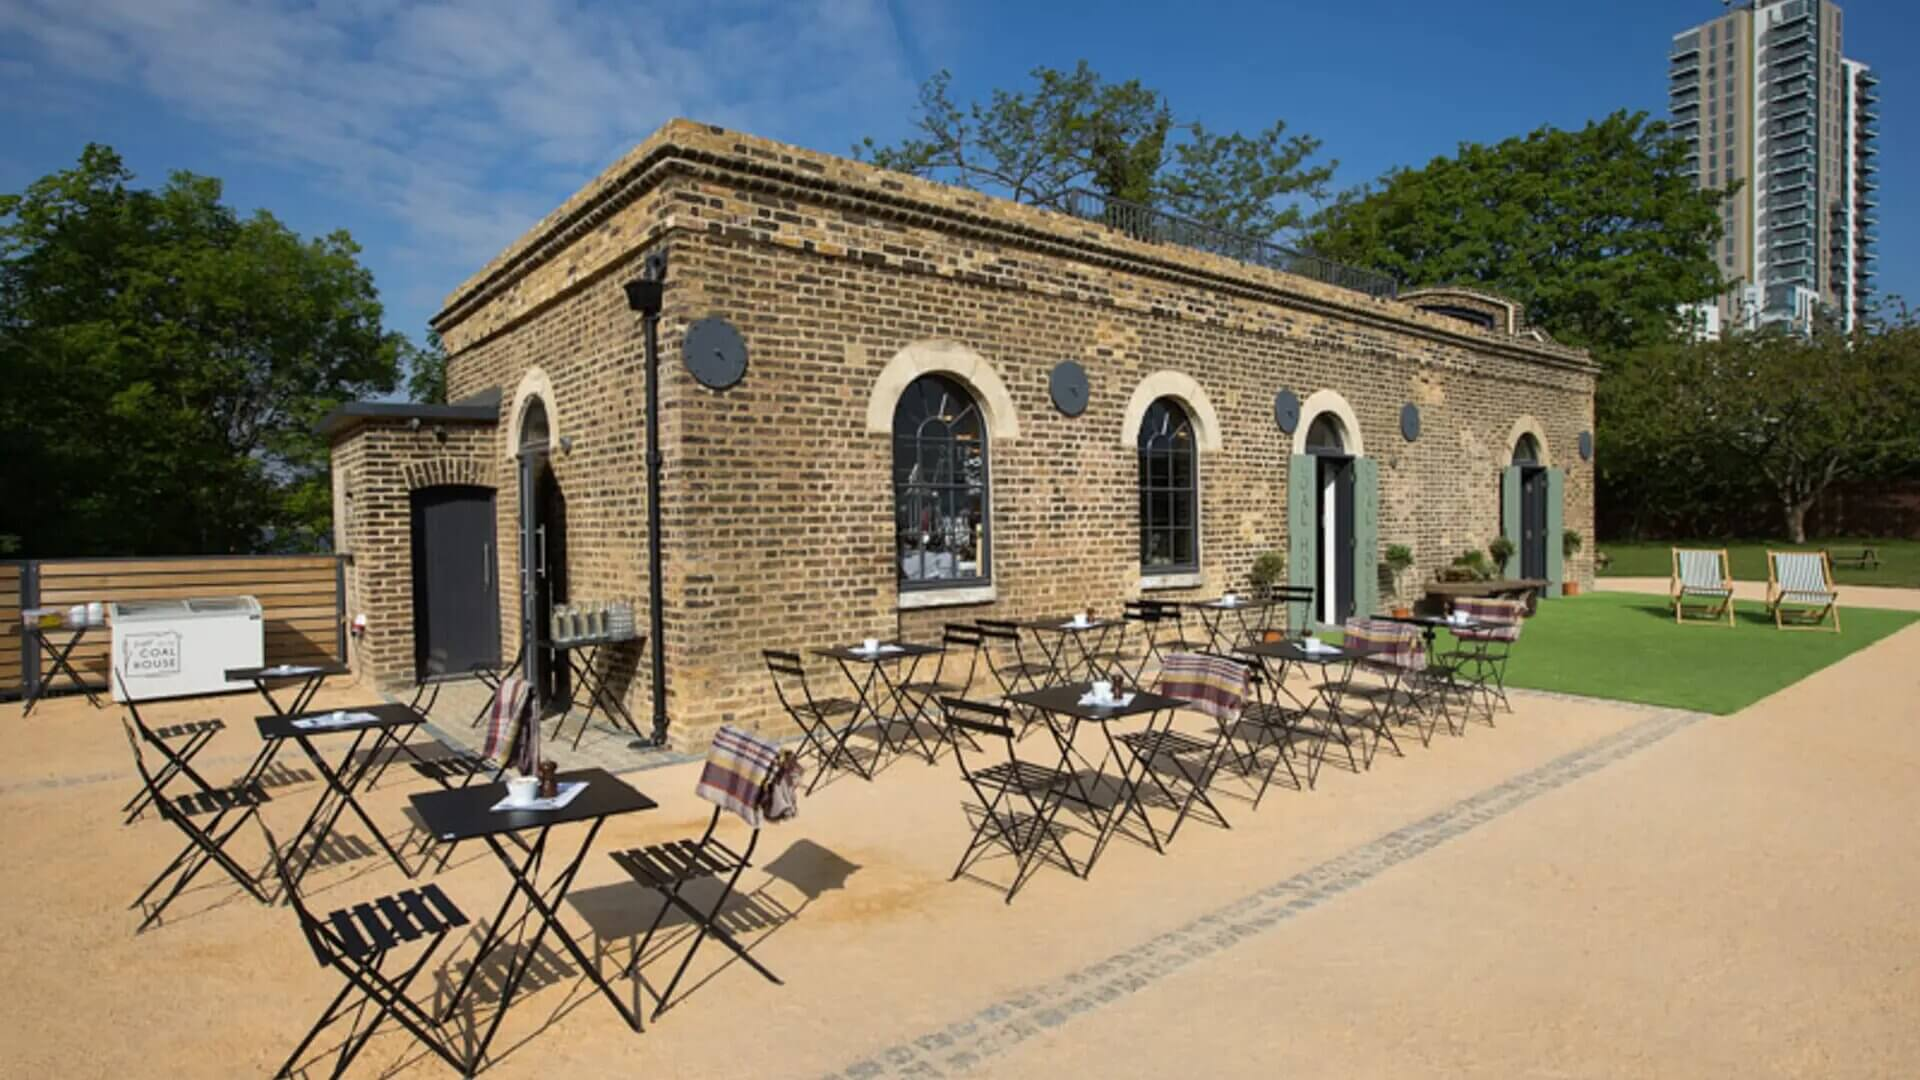 The outside view of The Coal House Cafe with tables outside it at Woodberry Wetlands.